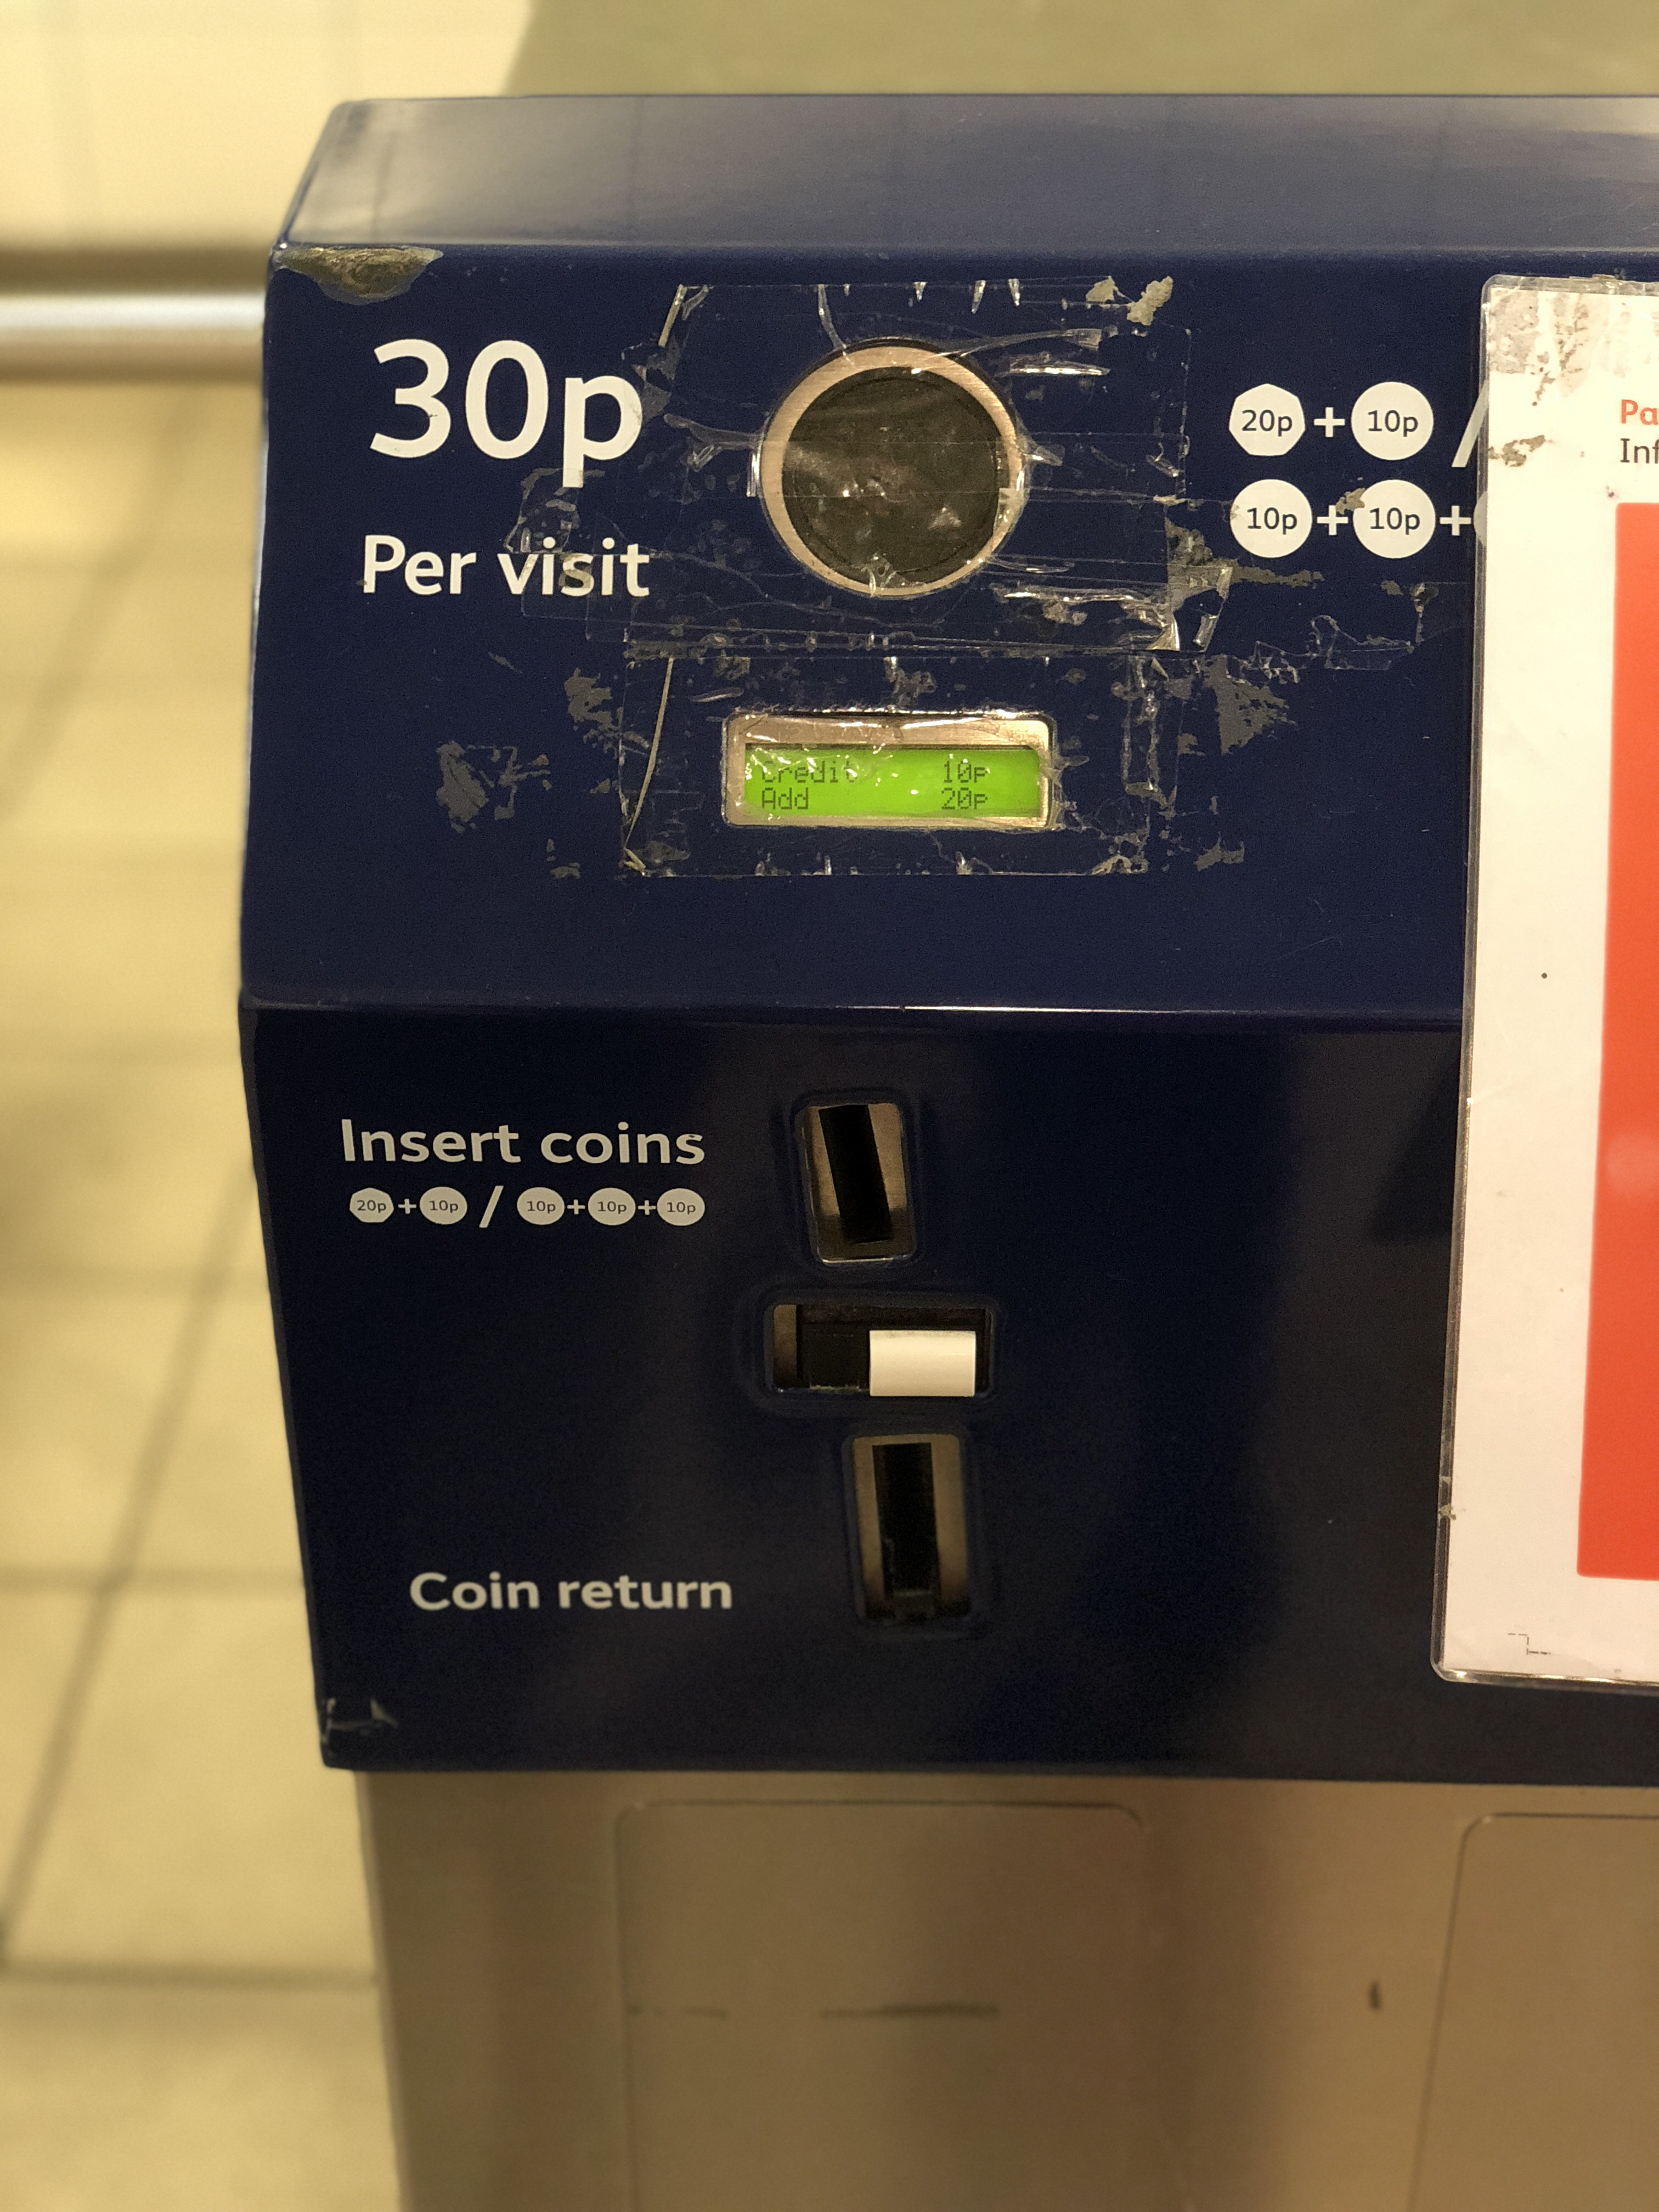 They're even courteous enough to provide a change machine should you not have 30 pence